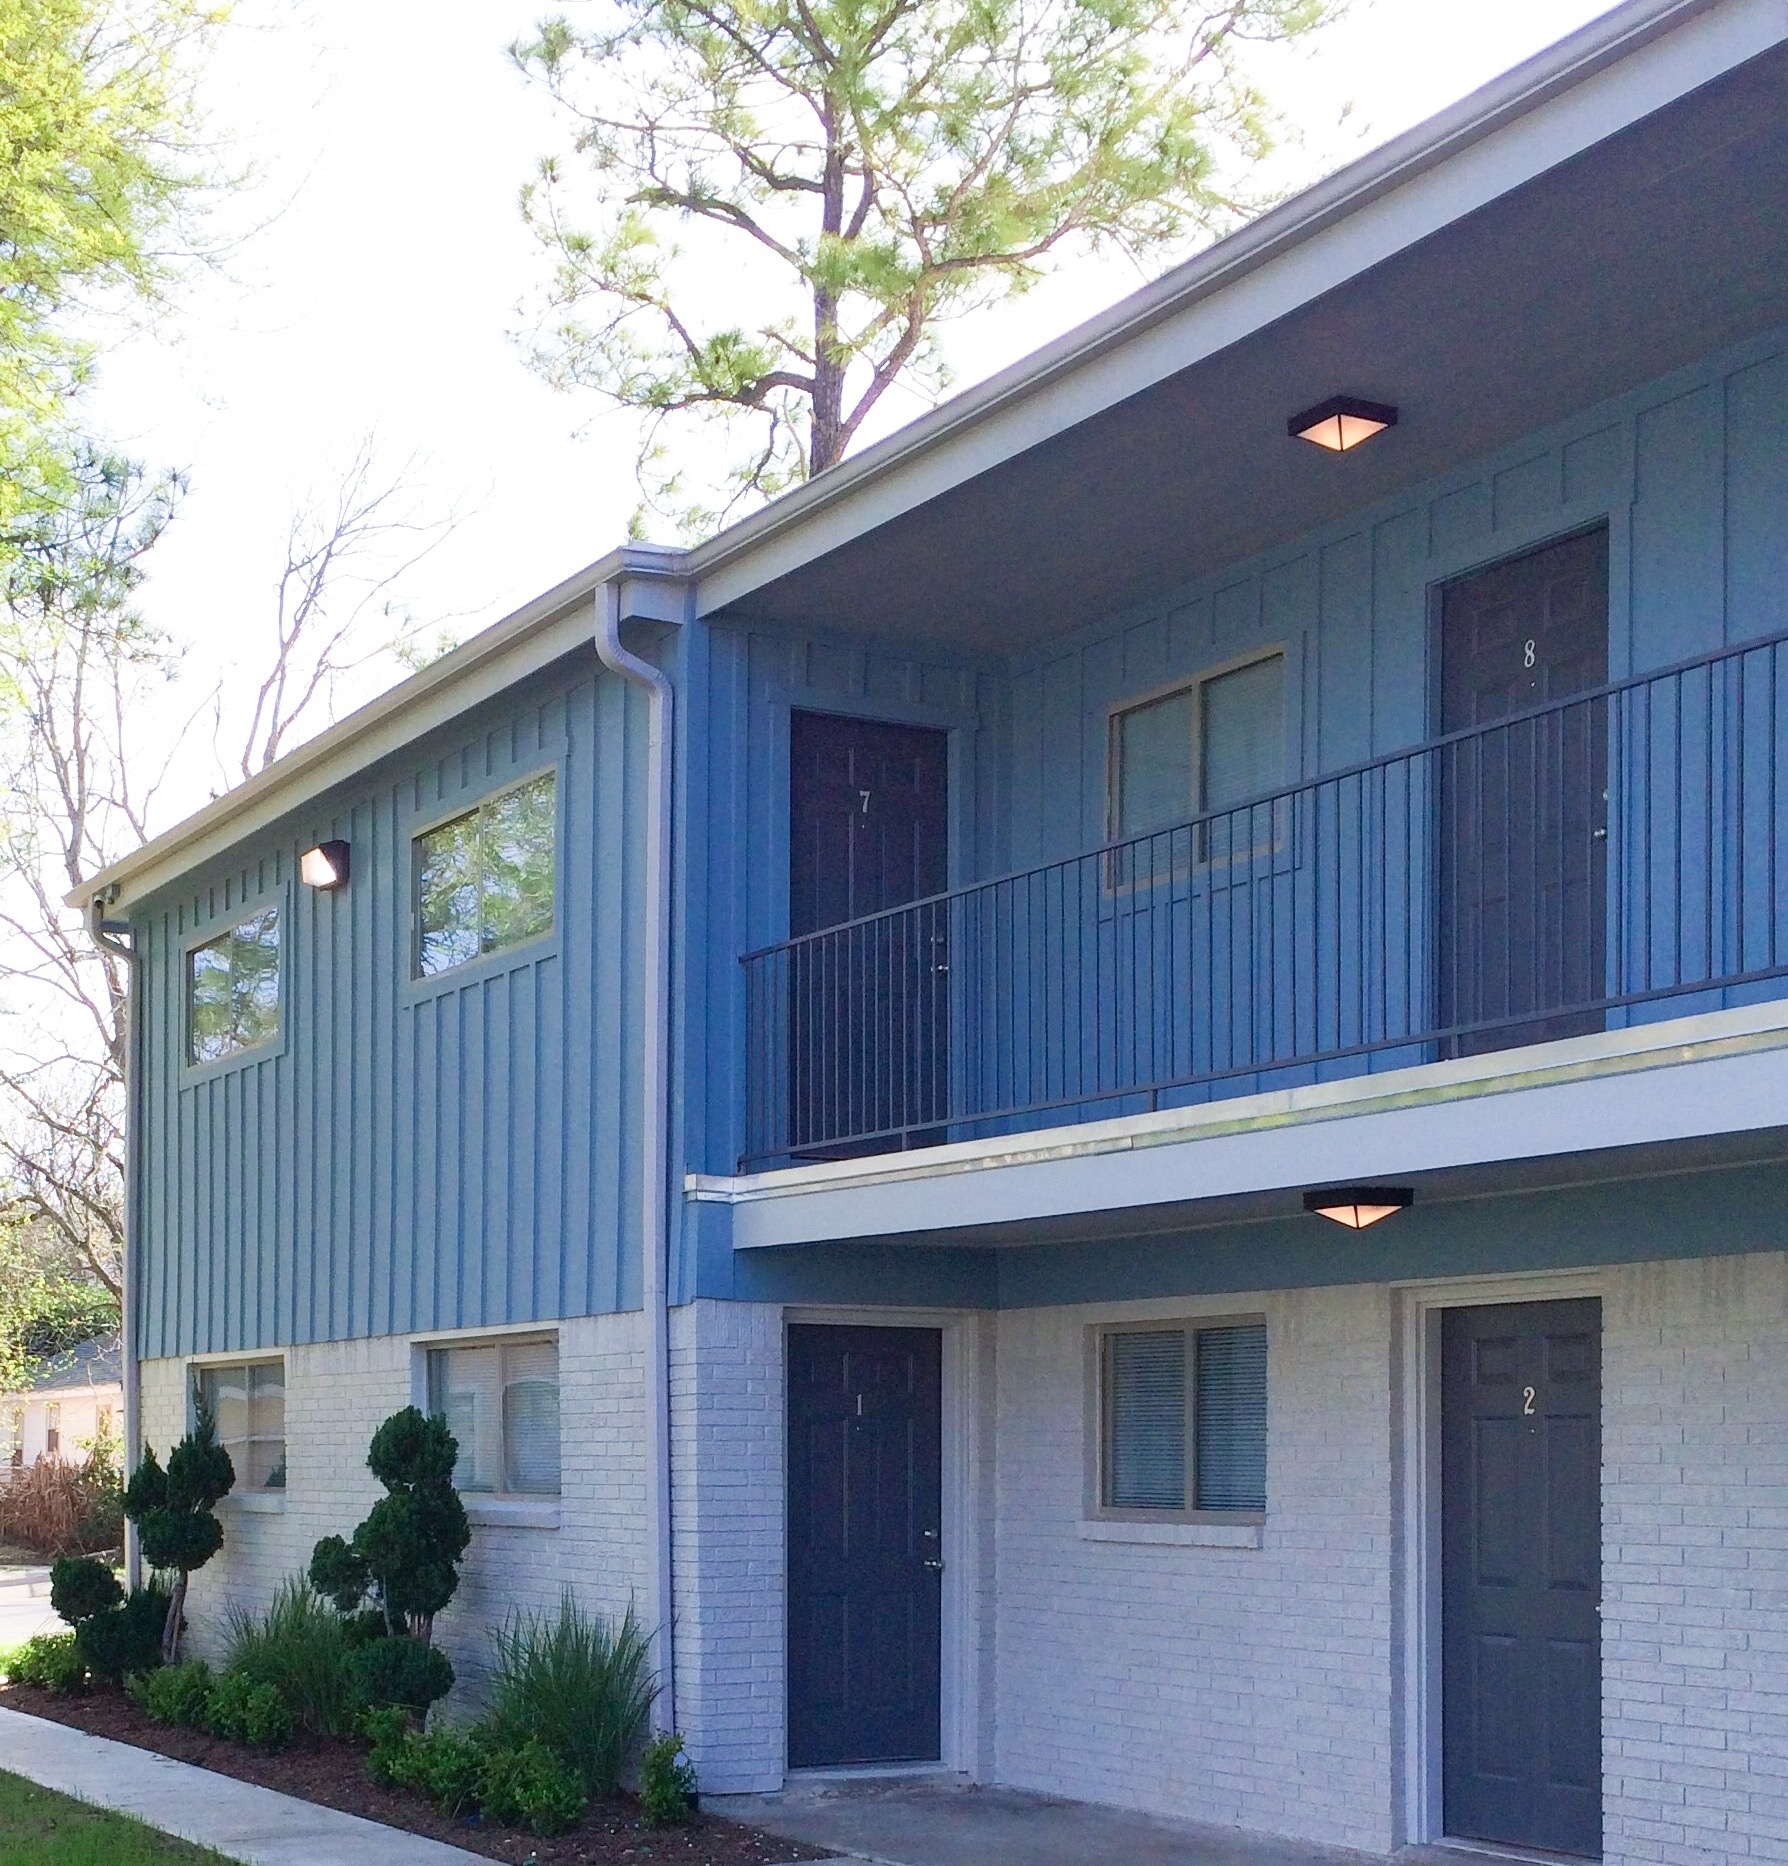 Apartments In Baytown Tx: Baytown Corporate Apartments